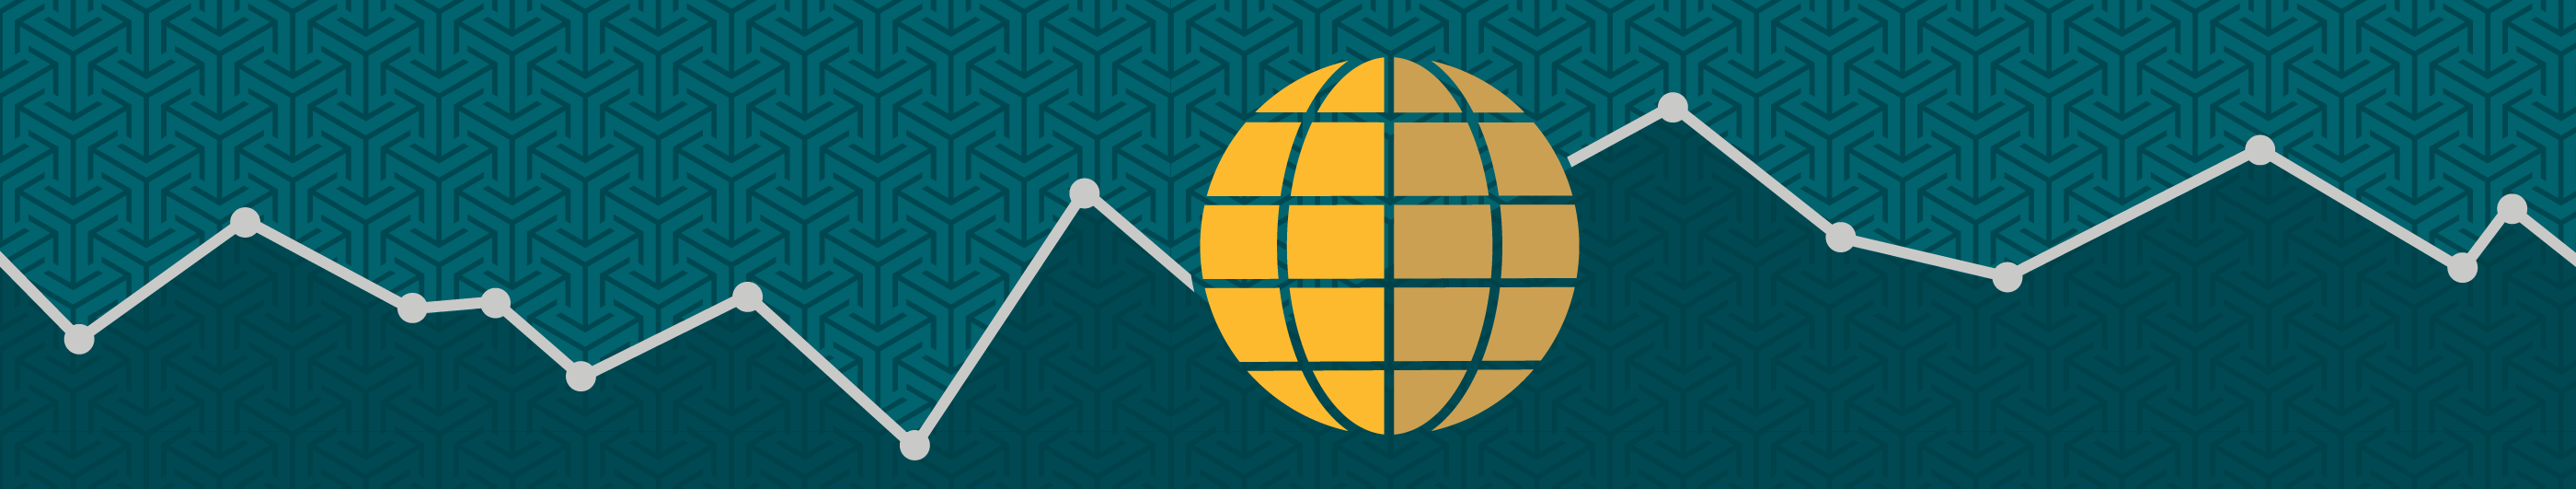 illustration of a yellow globe on a green background